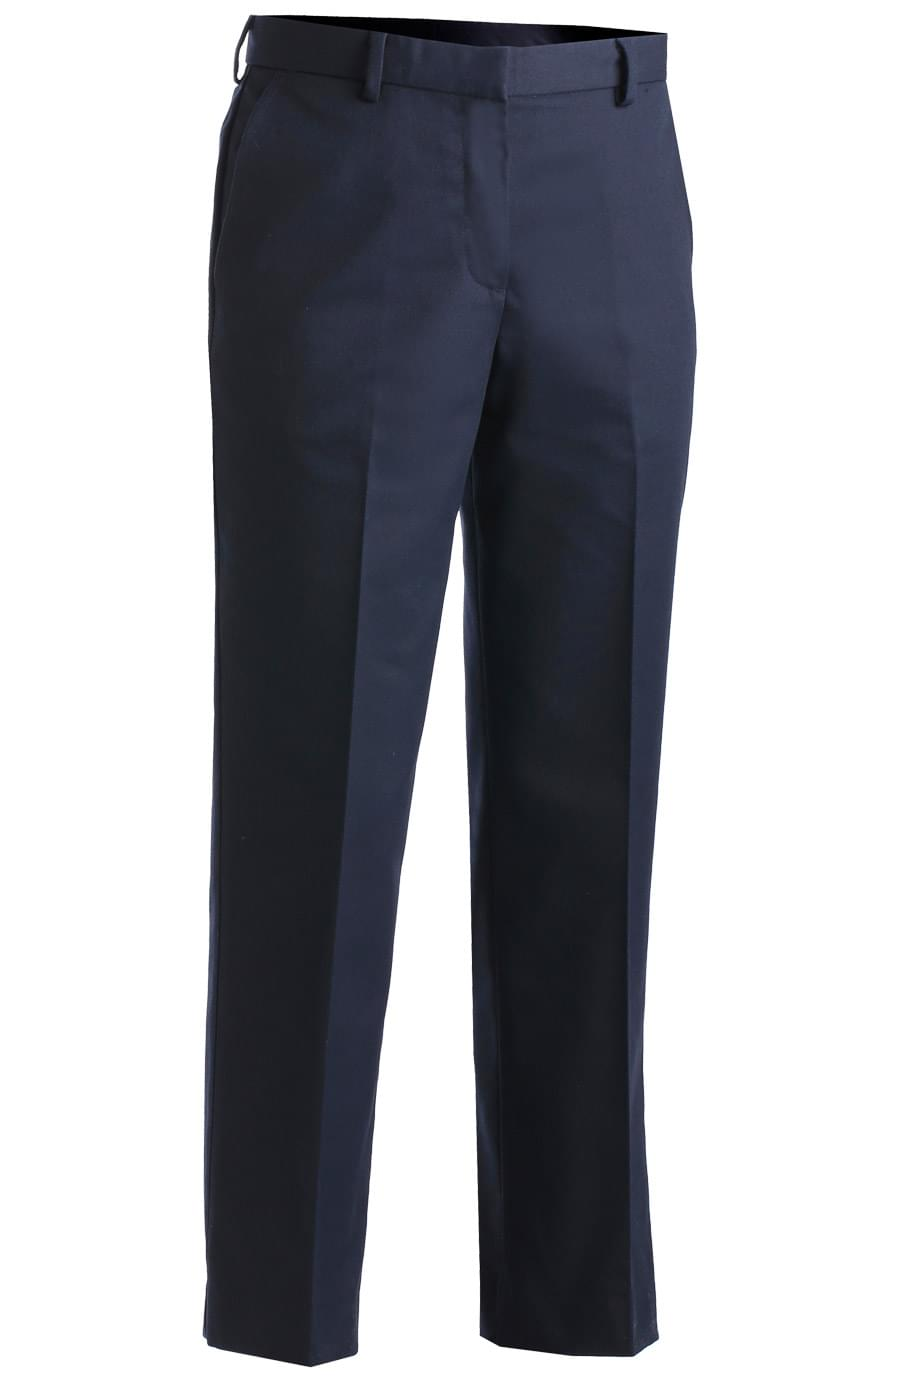 LADIES' BUSINESS CASUAL FLAT FRONT CHINO PANT